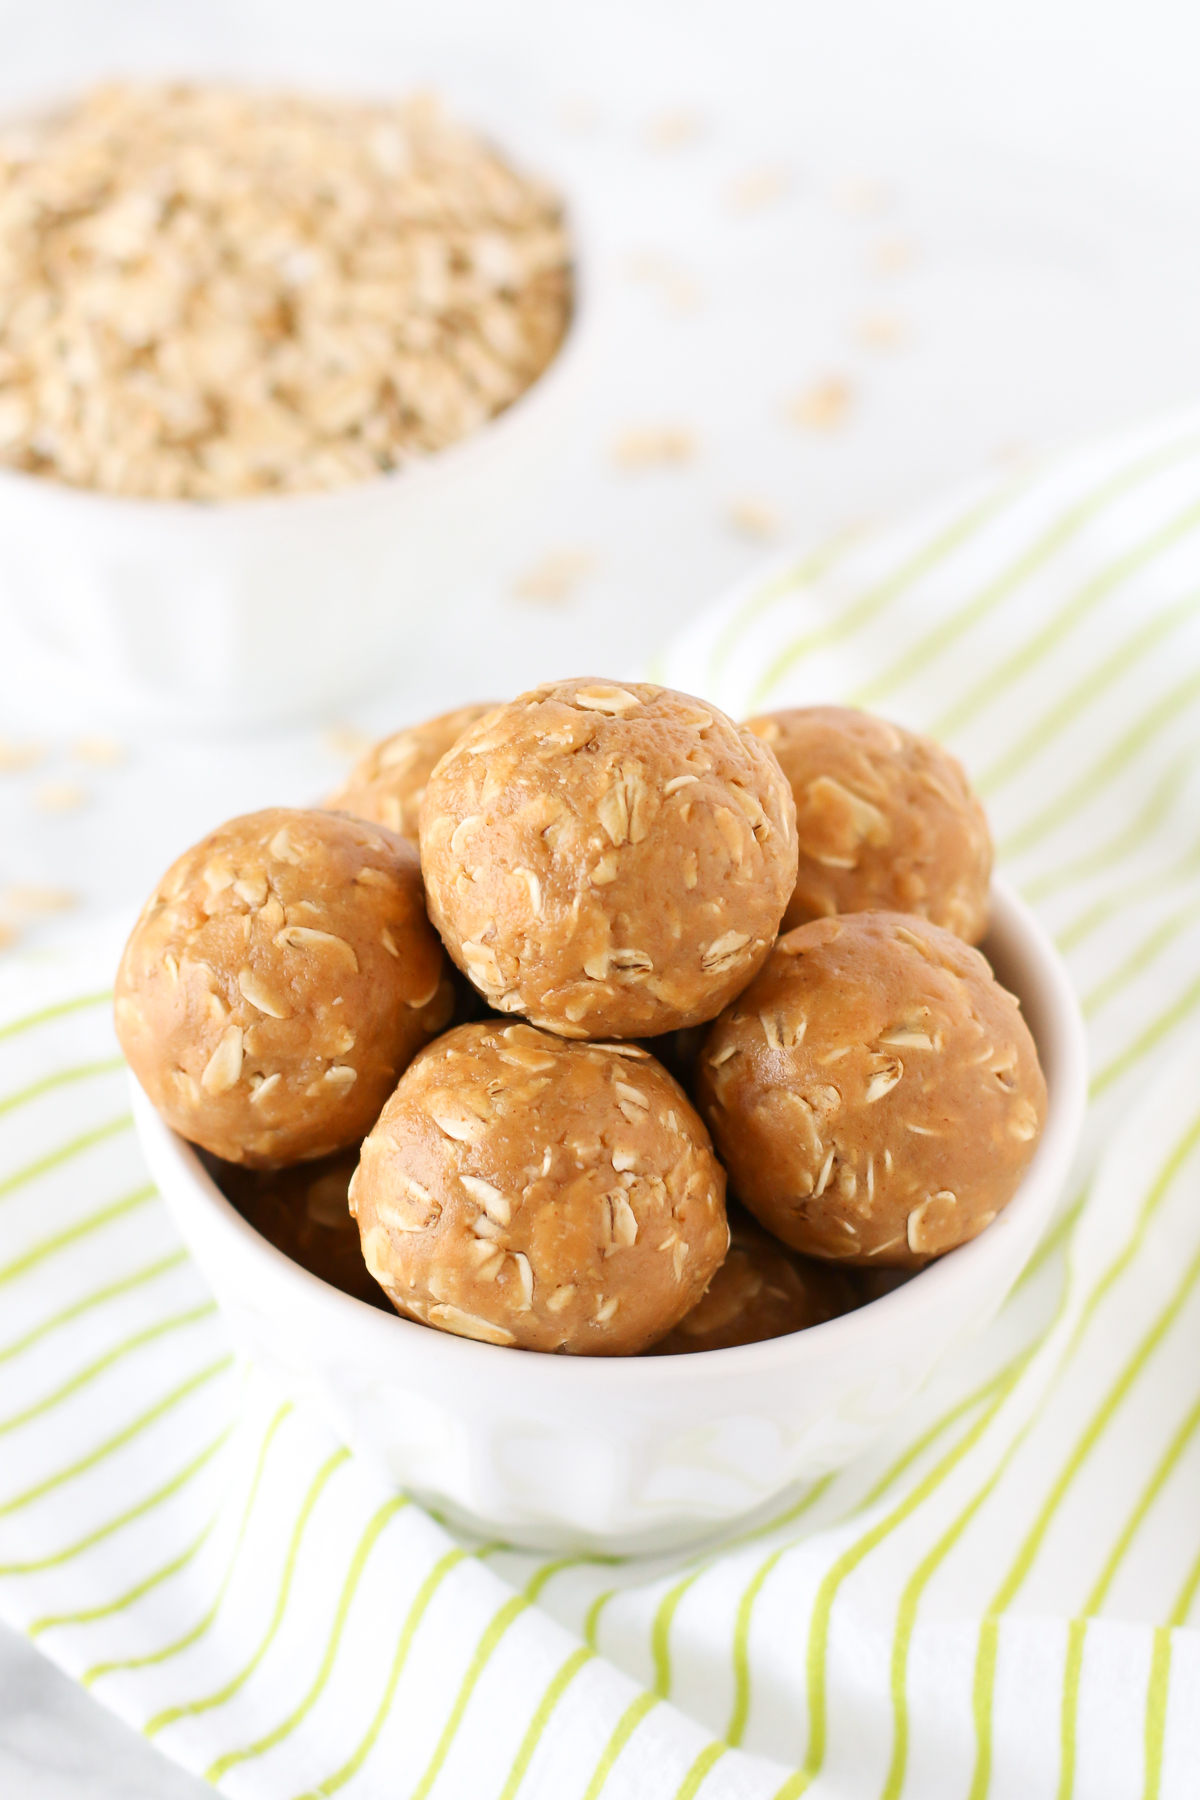 Peanut Butter Energy Bites. These little bites are made with just 4 ingredients and are great for on-the-go snacking!